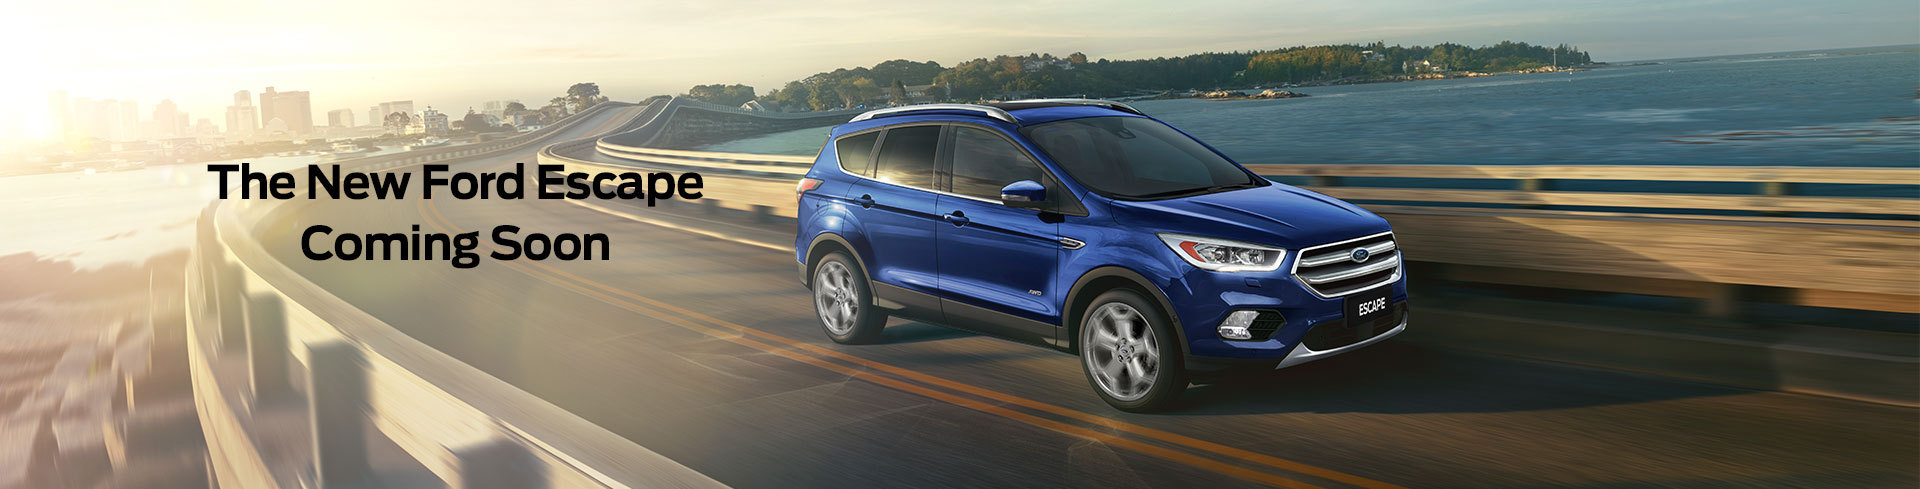 The New Ford Escape Coming Soon